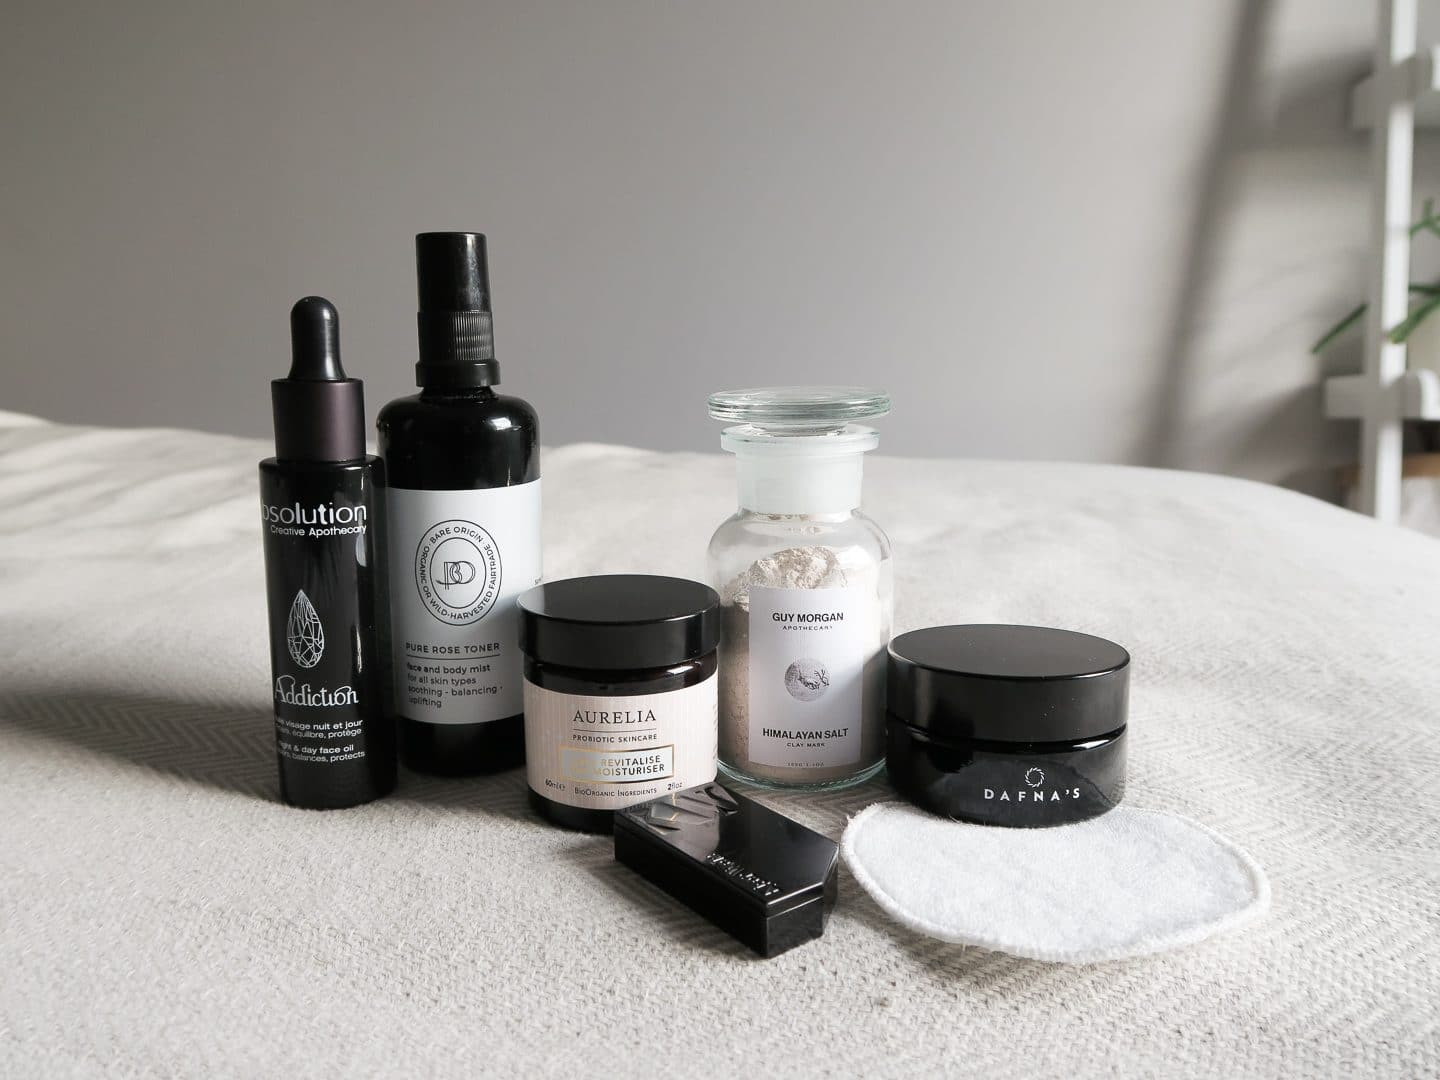 My Clean Beauty Picks for Winter | Curiously Conscious